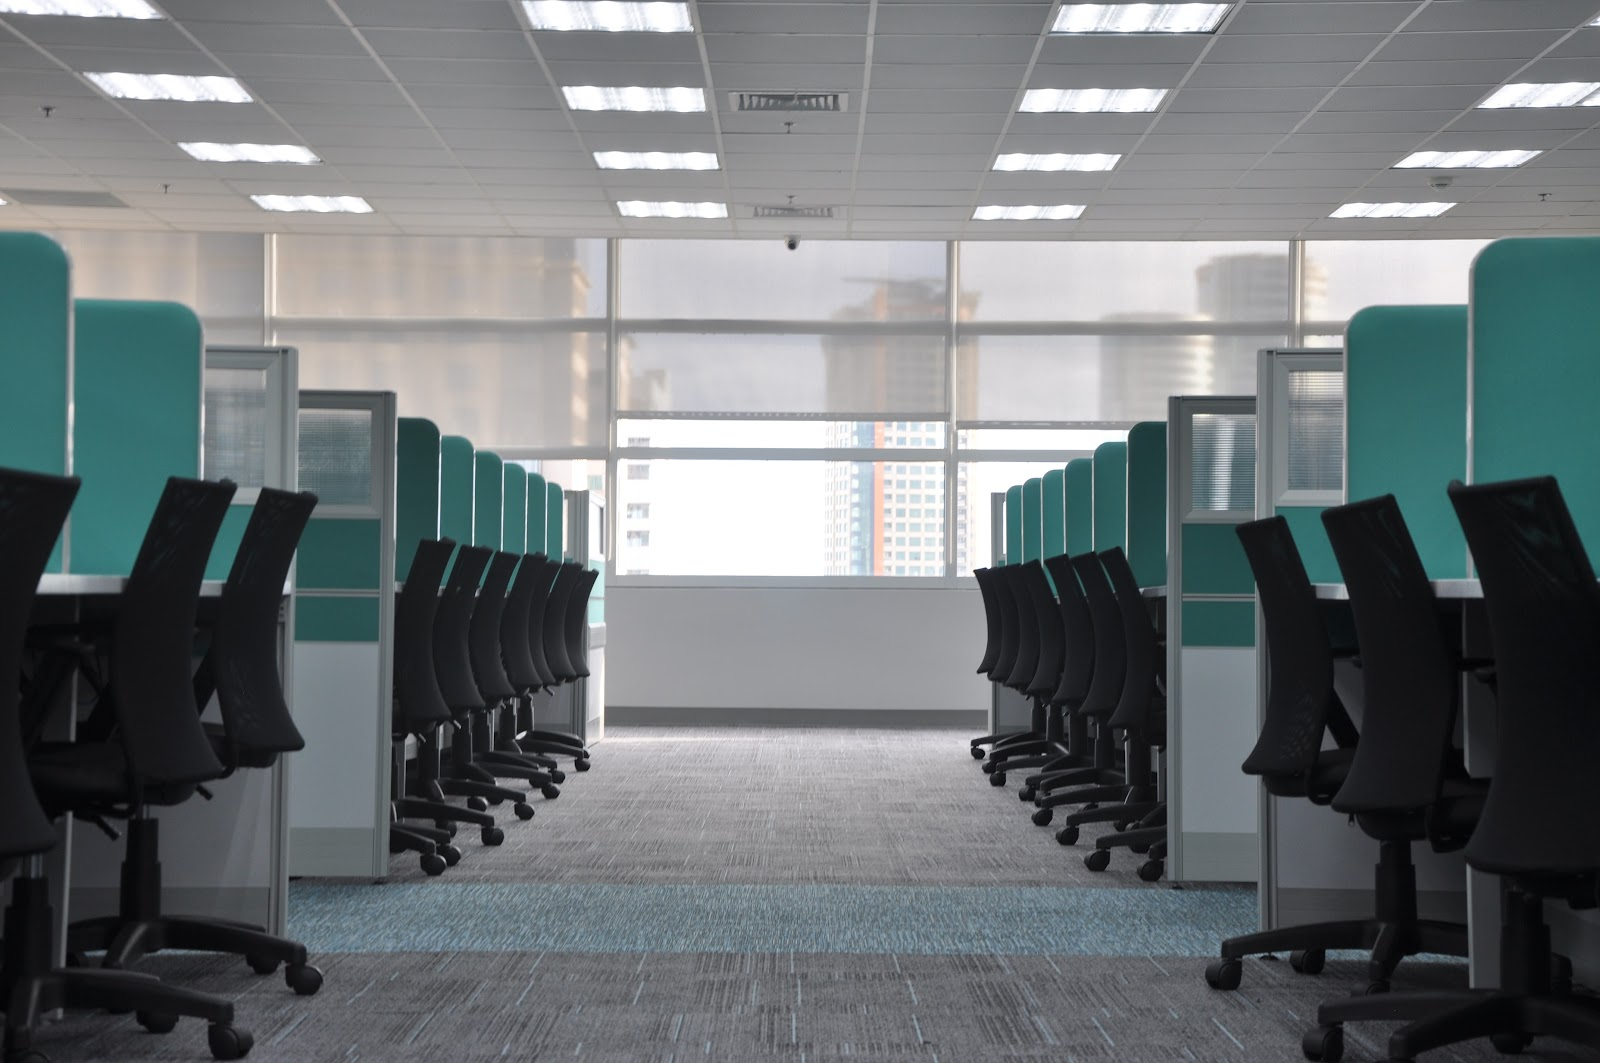 Office Cubicles With Chairs On Either Side